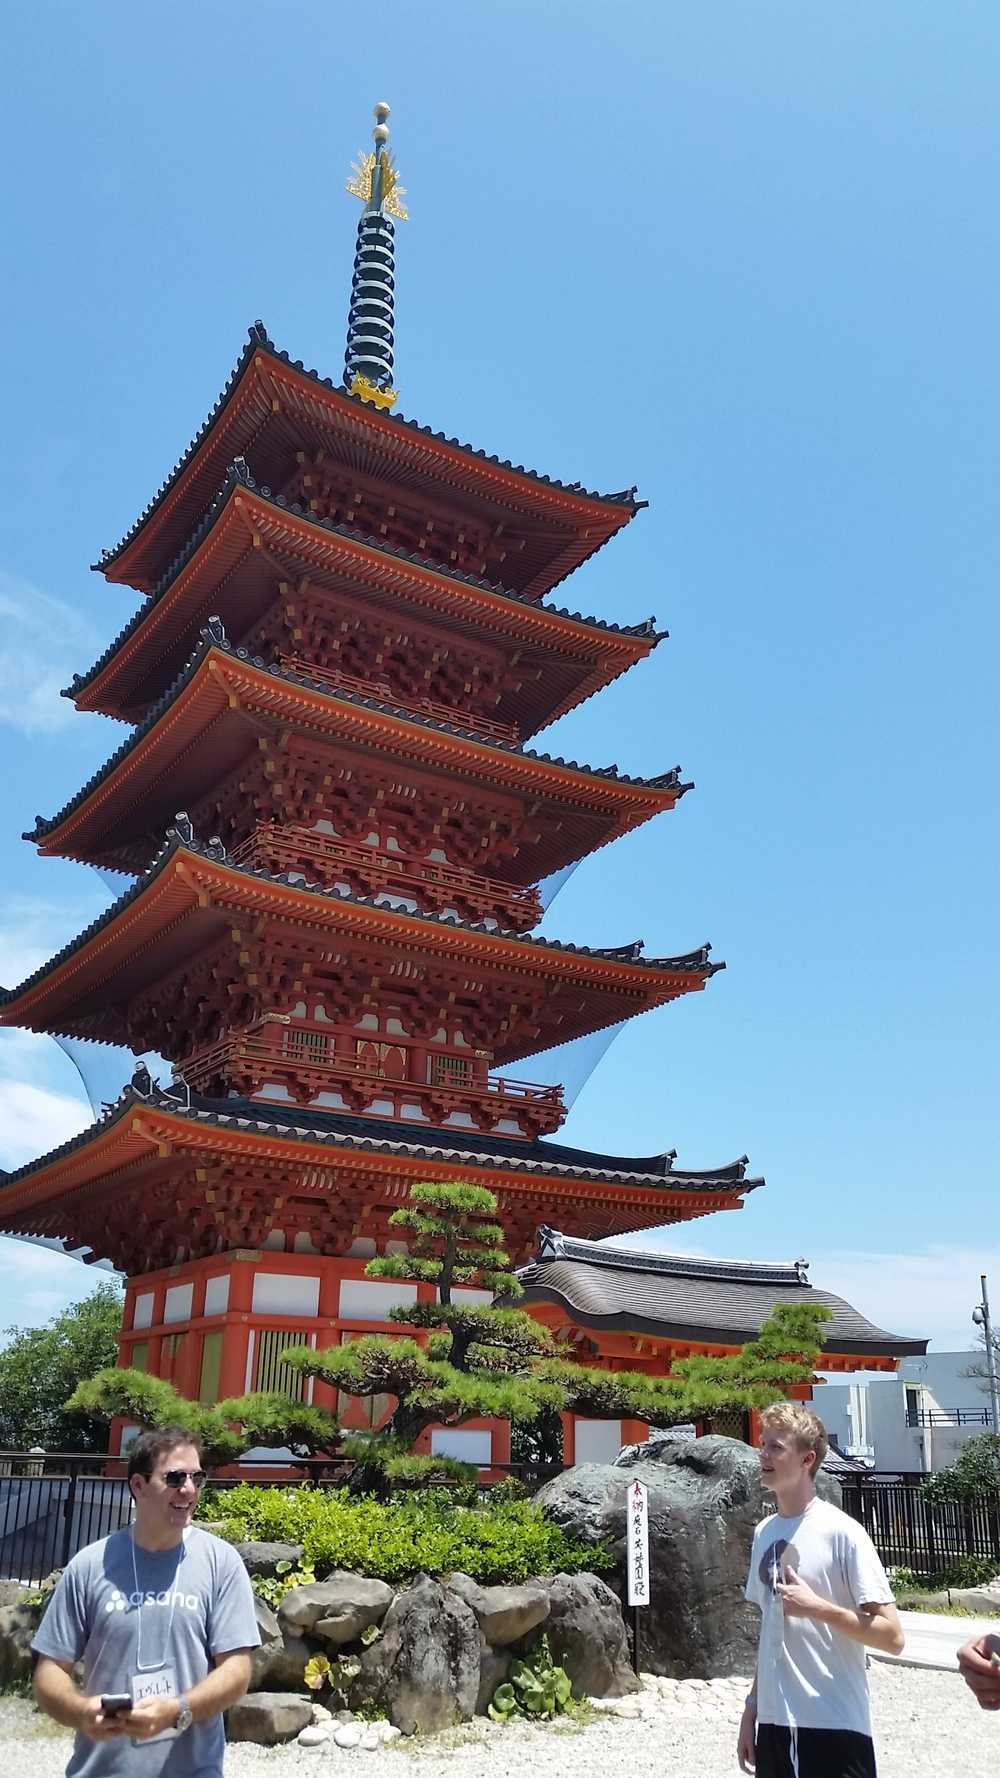 A very impressive pagoda at Enpuku-ji temple in Choshi